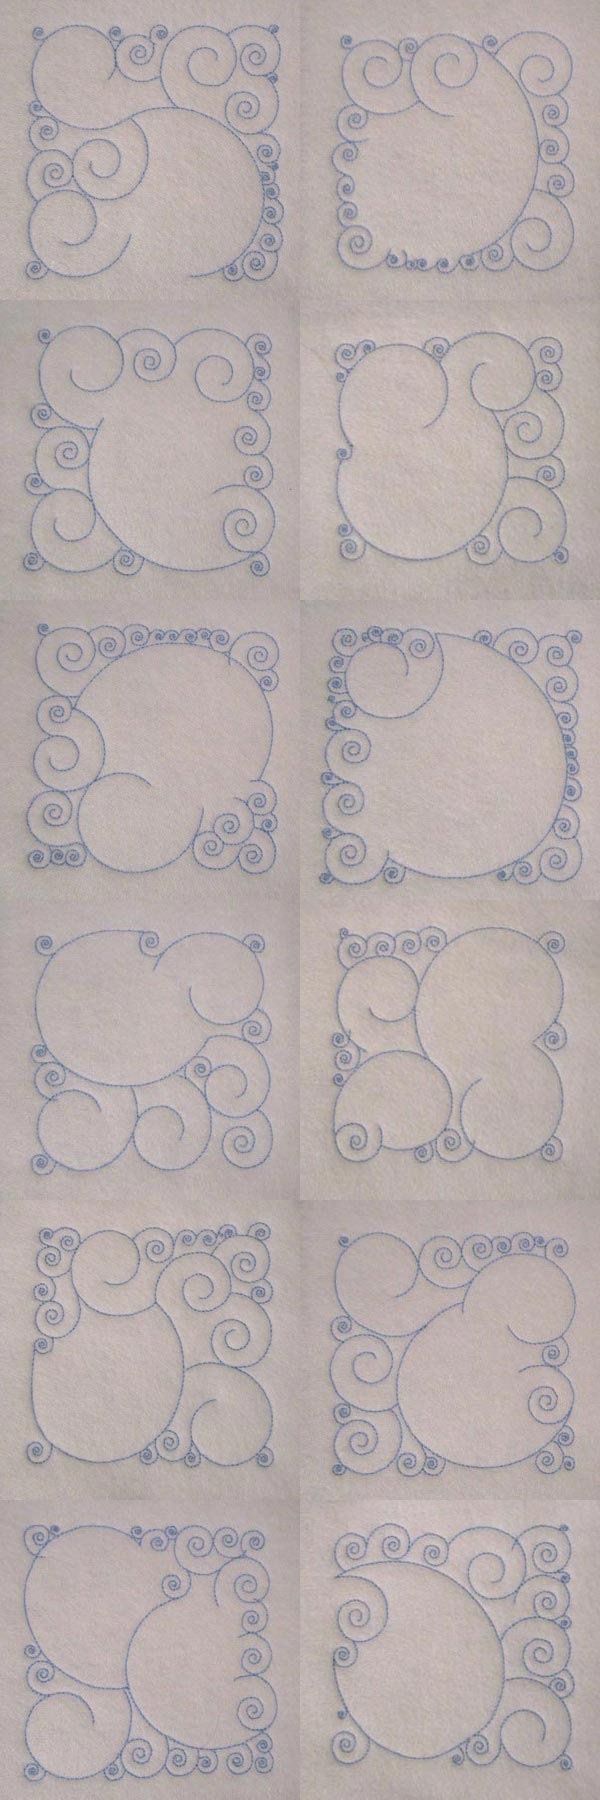 Swirly Square Background Blocks Embroidery Machine Design Details